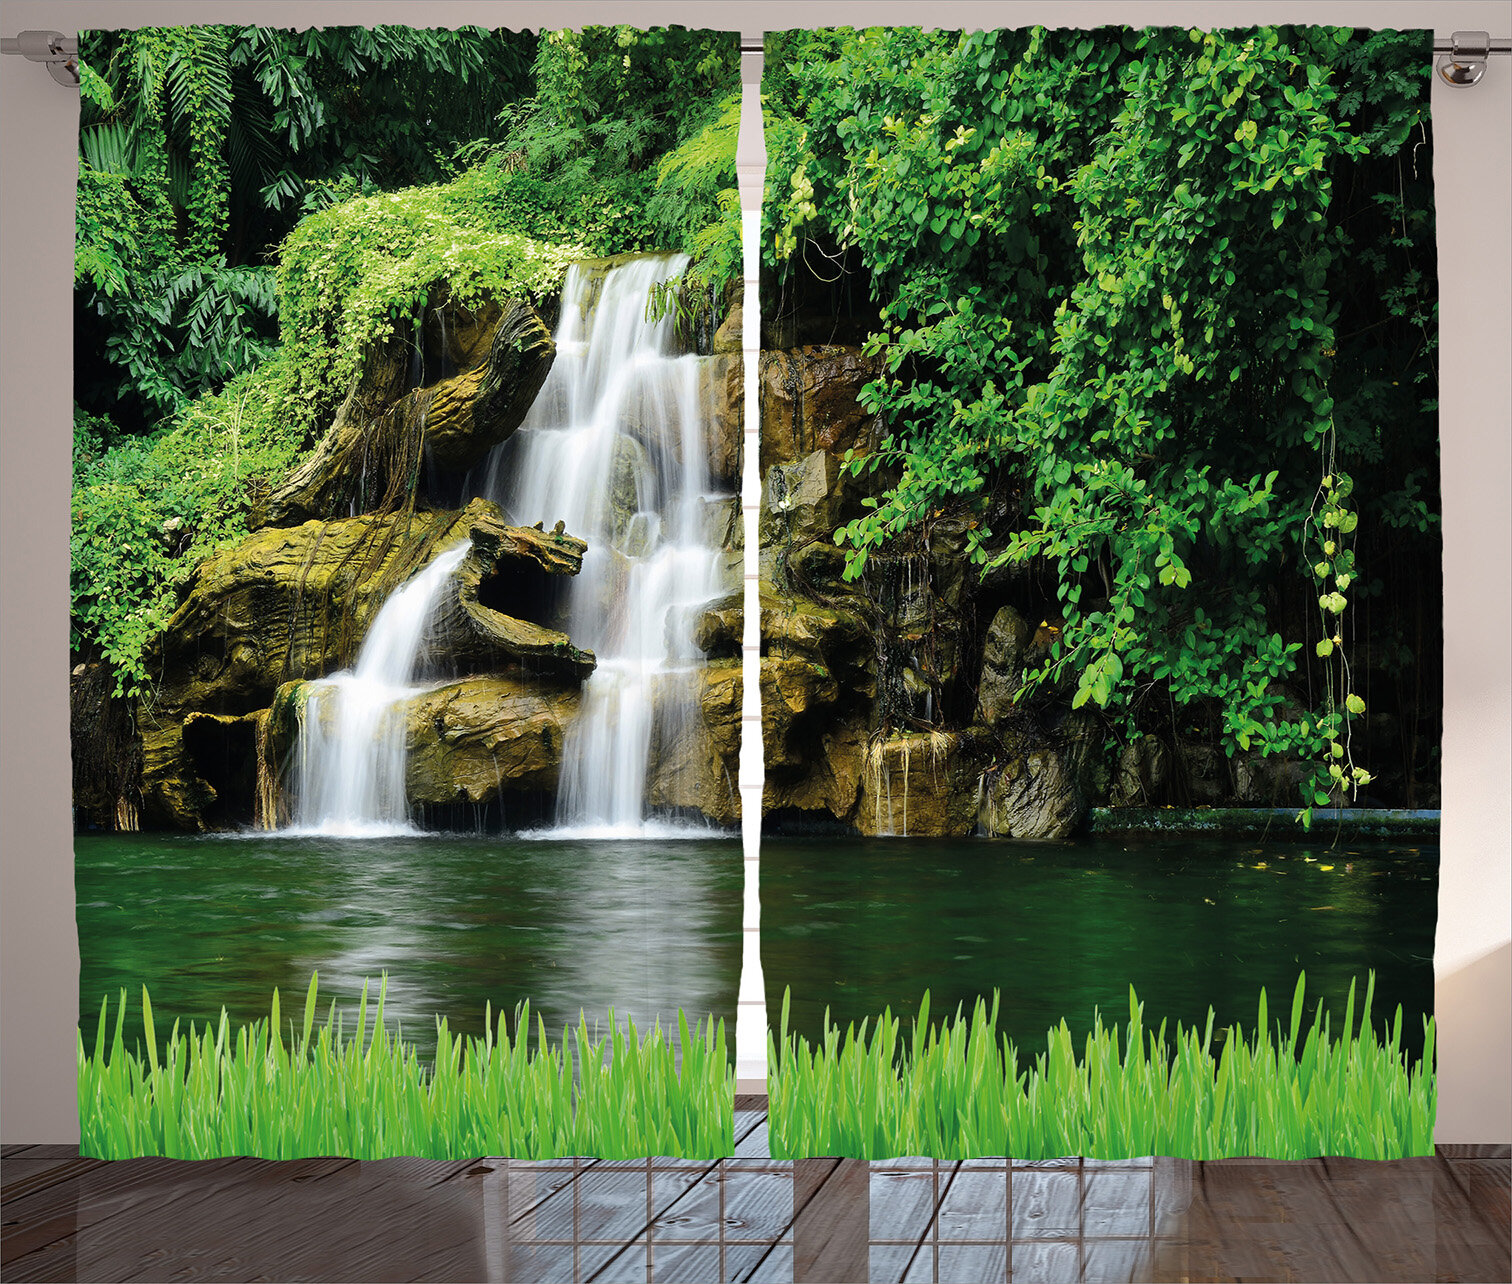 East Urban Home Waterfall Double Waterfalls Flow To Natural Green